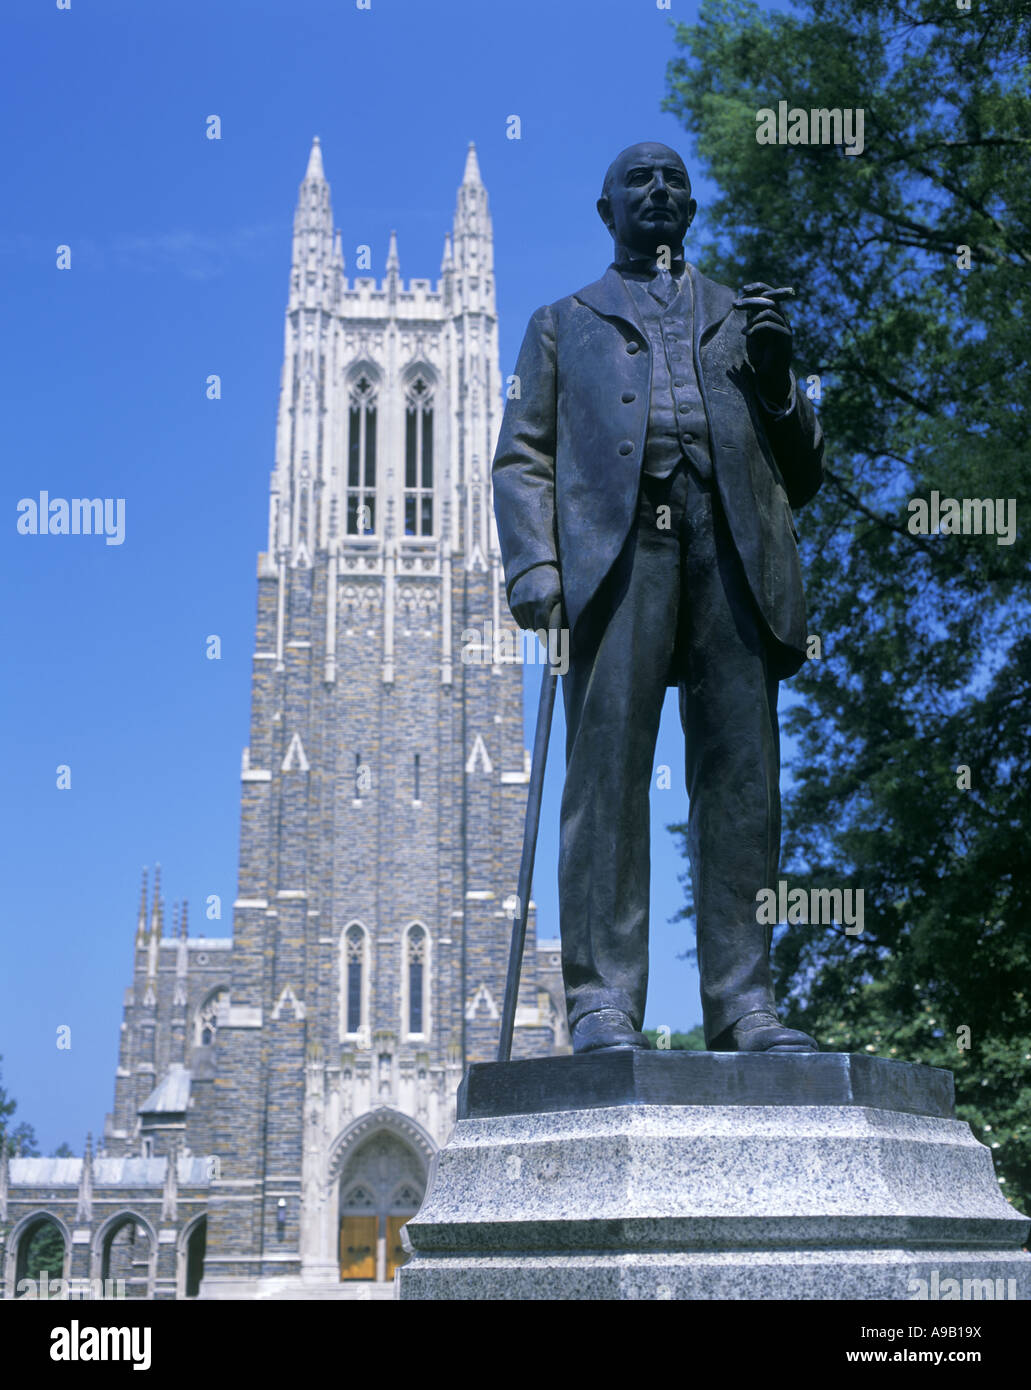 DUKE STATUE DUKE UNIVERSITY CHAPEL DURHAM NORTH CAROLINA USA - Stock Image